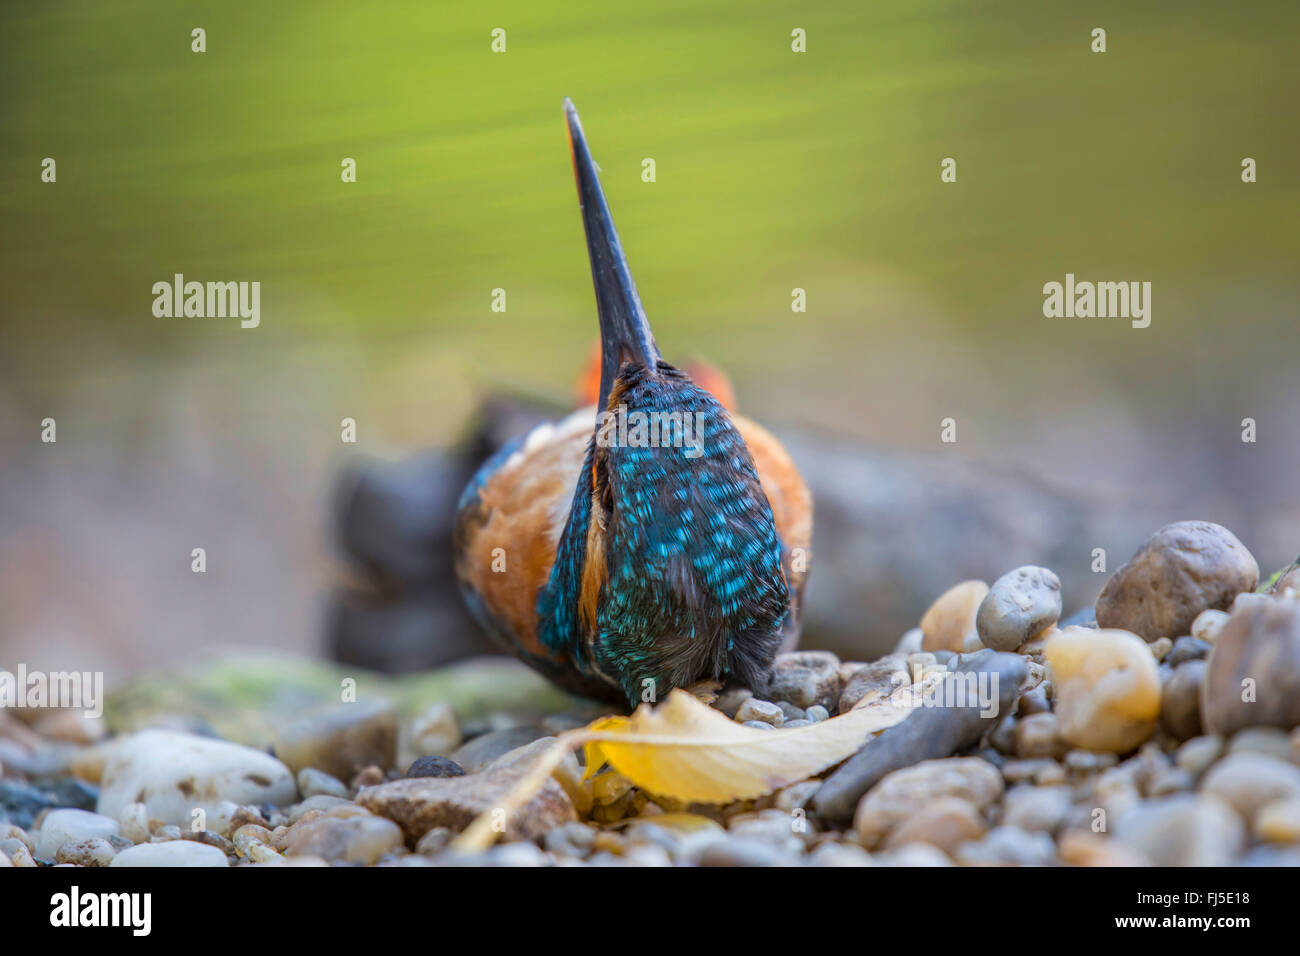 river kingfisher (Alcedo atthis), lying dead at the riverside in the river shingle, Germany, Bavaria, Niederbayern, - Stock Image